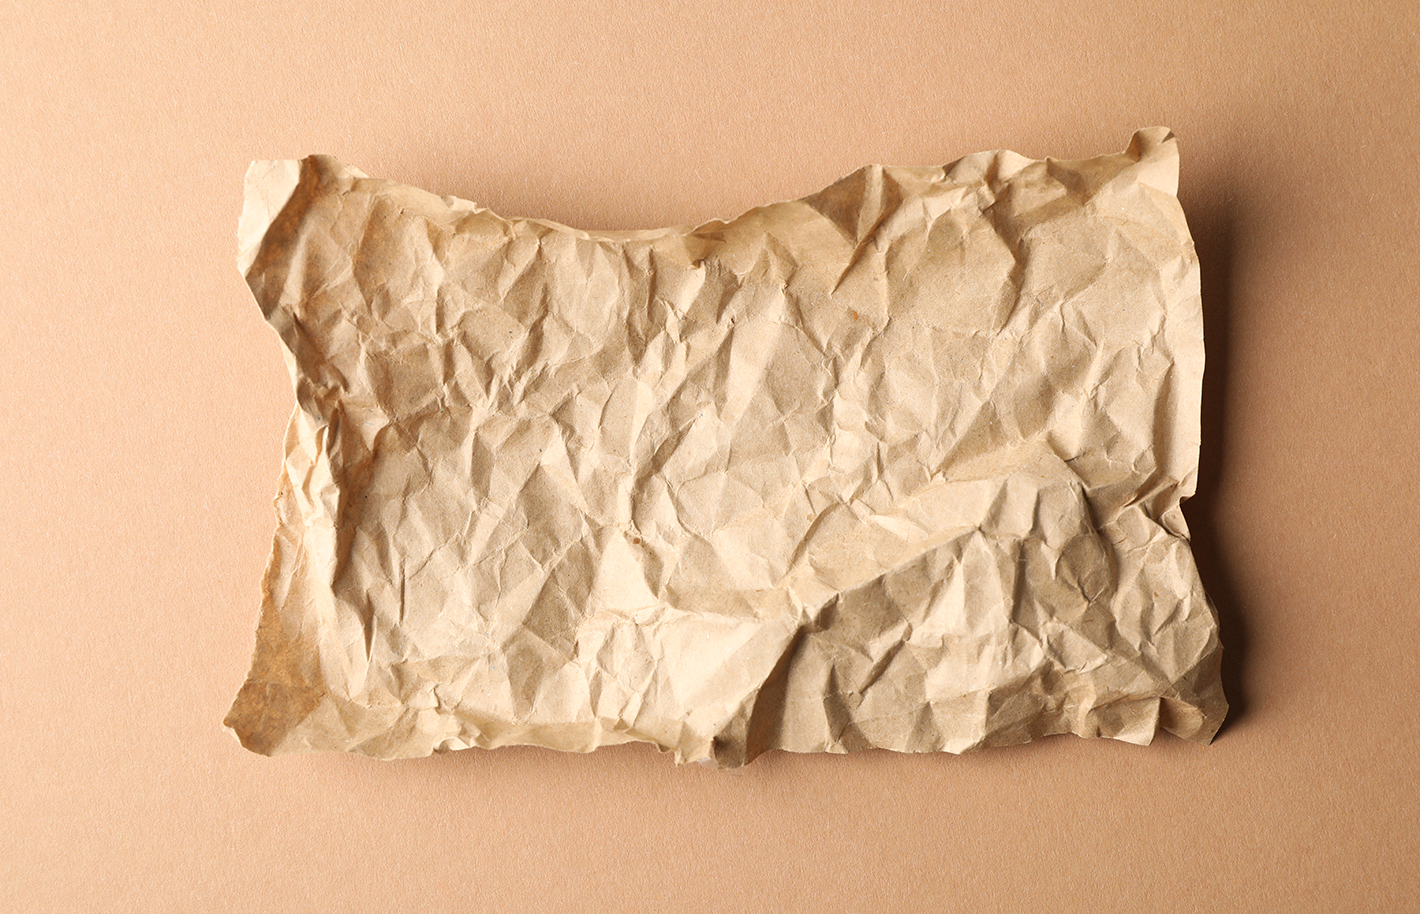 Crumpled paper on craft background, top view